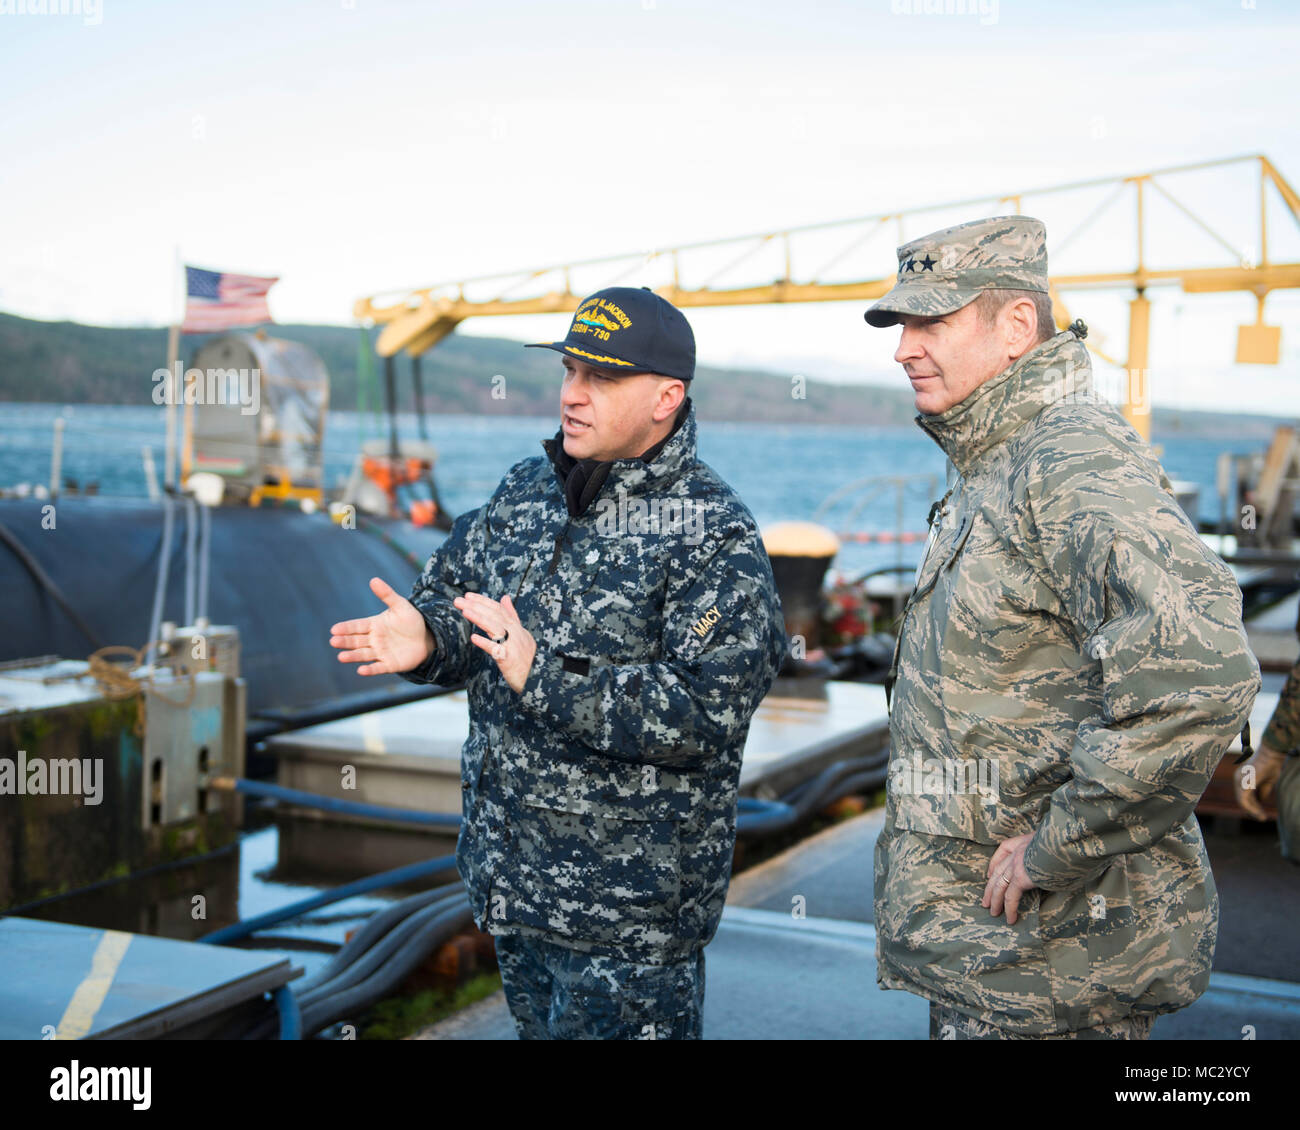 BANGOR, Wash. (Jan. 27, 2018) - Cmdr. Kevin Macy, commanding officer USS Henry M. Jackson (SSBN 730) gives a tour to Gen. Robin Rand, Air Force Global Strike Command commander.  Rand visited staff and facilities assigned to Commander Submarine Group 9 at Naval Base Kitsap-Bangor to see the operations of one leg of the nuclear triad. (U.S. Navy photo by Lt. Cmdr. Michael L. Smith/Released) - Stock Image